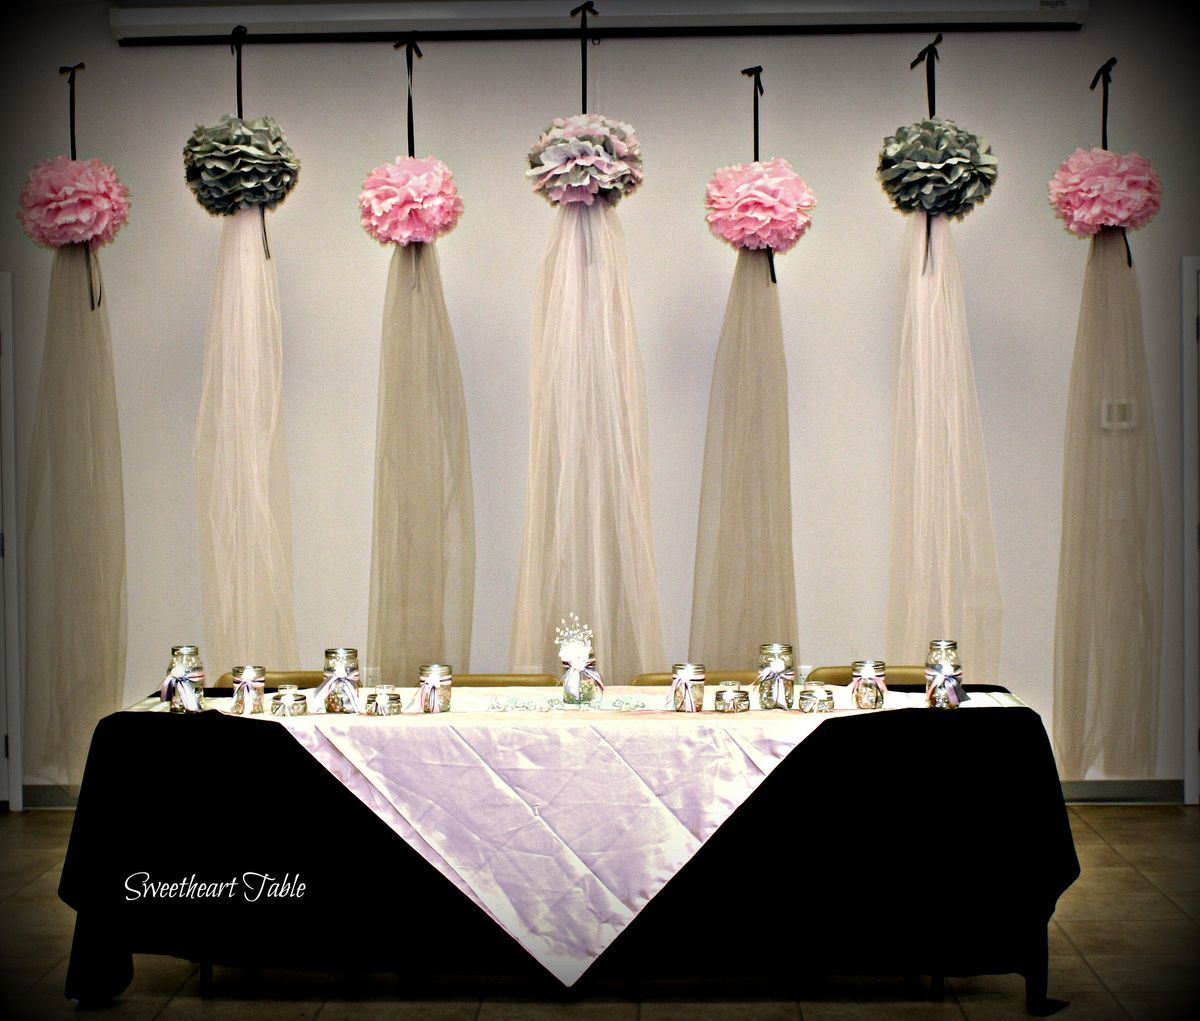 Wedding decorations backdrop  bcebbceefabeaedbg  pixels  party